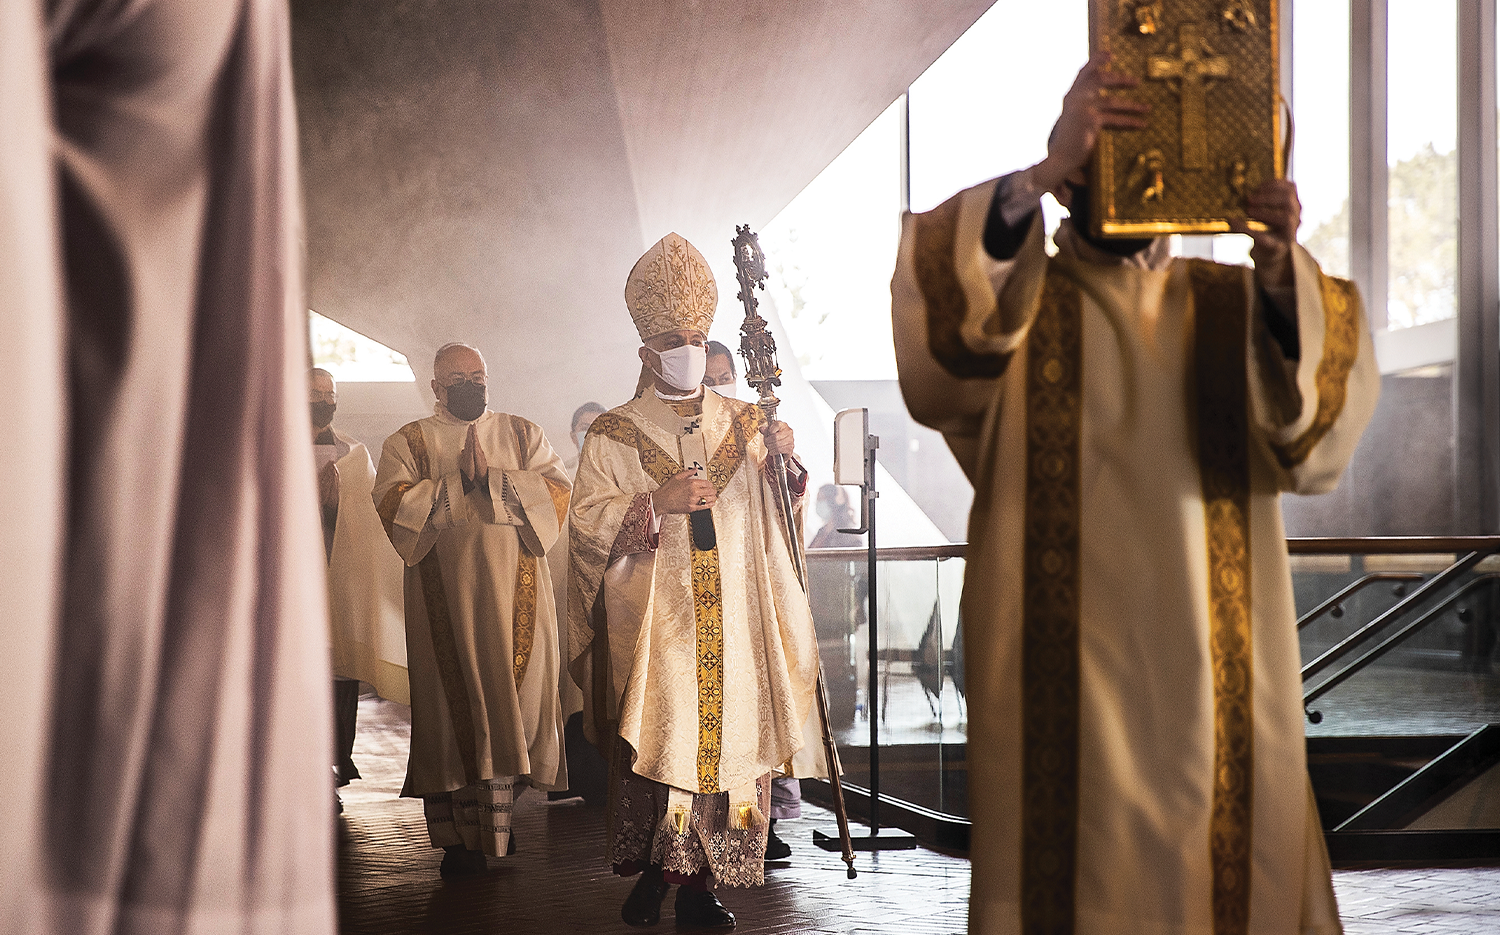 Archbishop Salvatore Cordileone (center) enters during an in-church Easter Mass celebration at the Cathedral of Saint Mary of the Assumption in San Francisco.